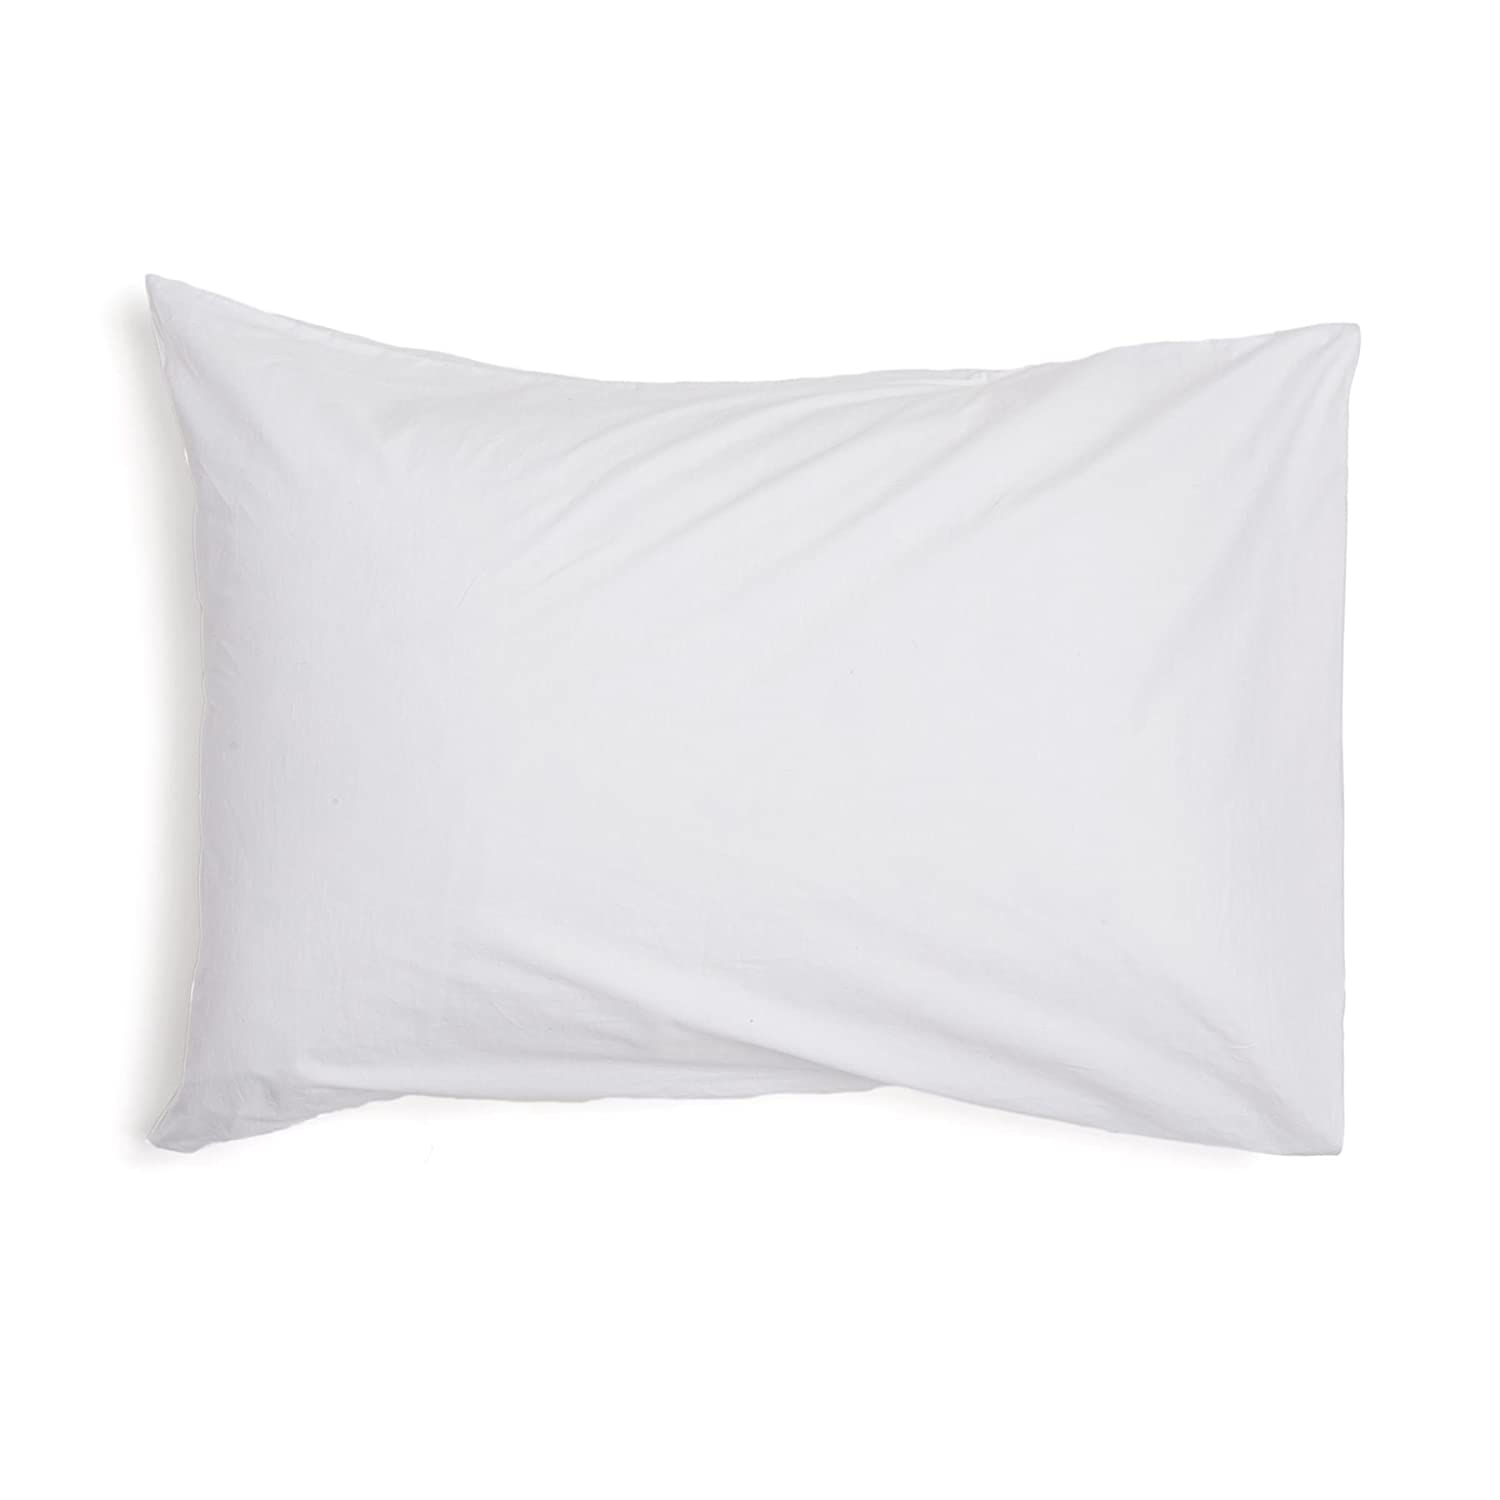 Premier Non-Woven Disposable Pillow Cases, Pack of 50 Healthcenter